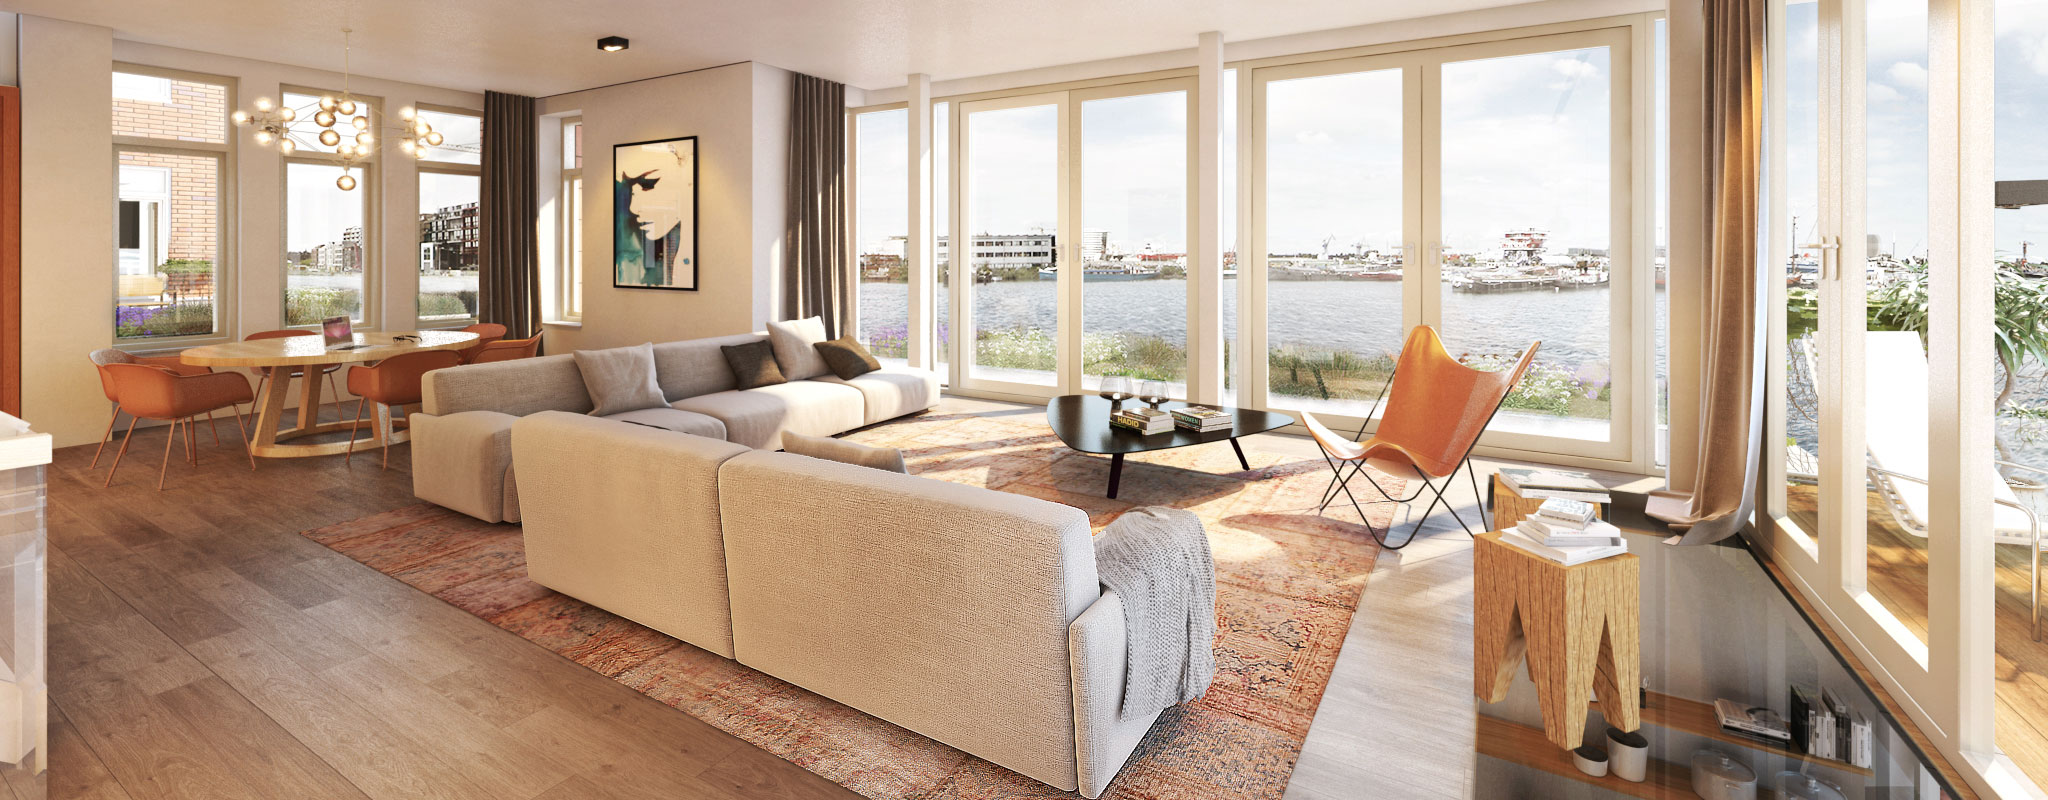 Modern spacious furnished light airy living room looking onto sunlit river with soft furnishings nicely rendered.